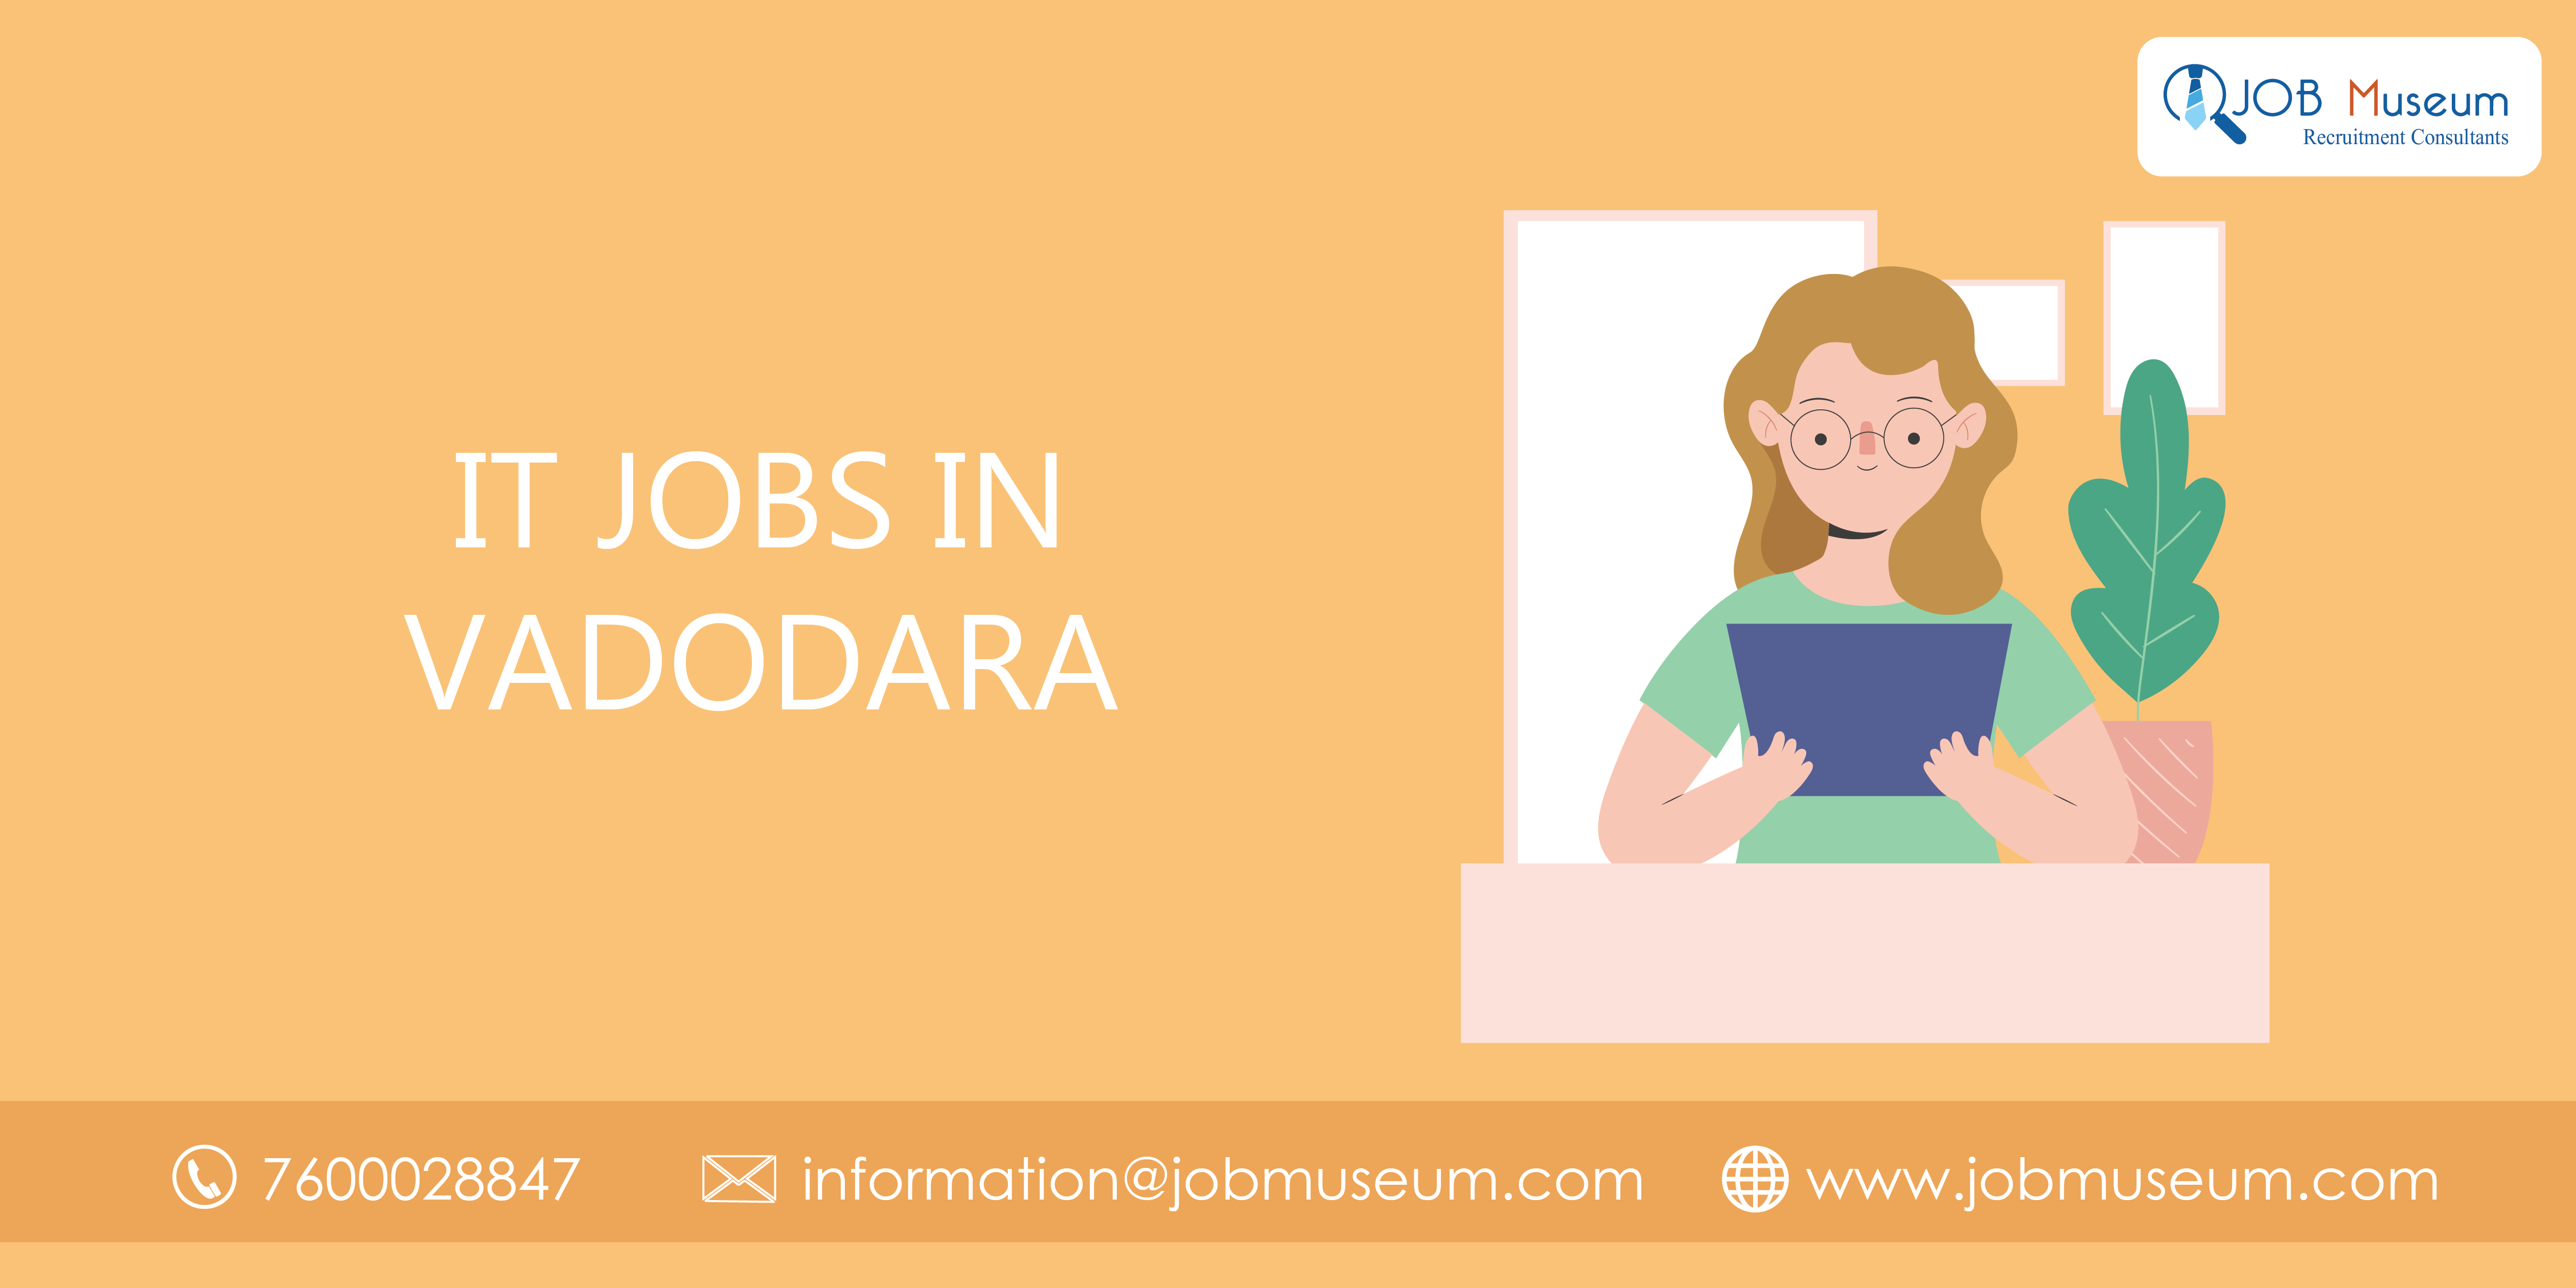 IT jobs in vadodara